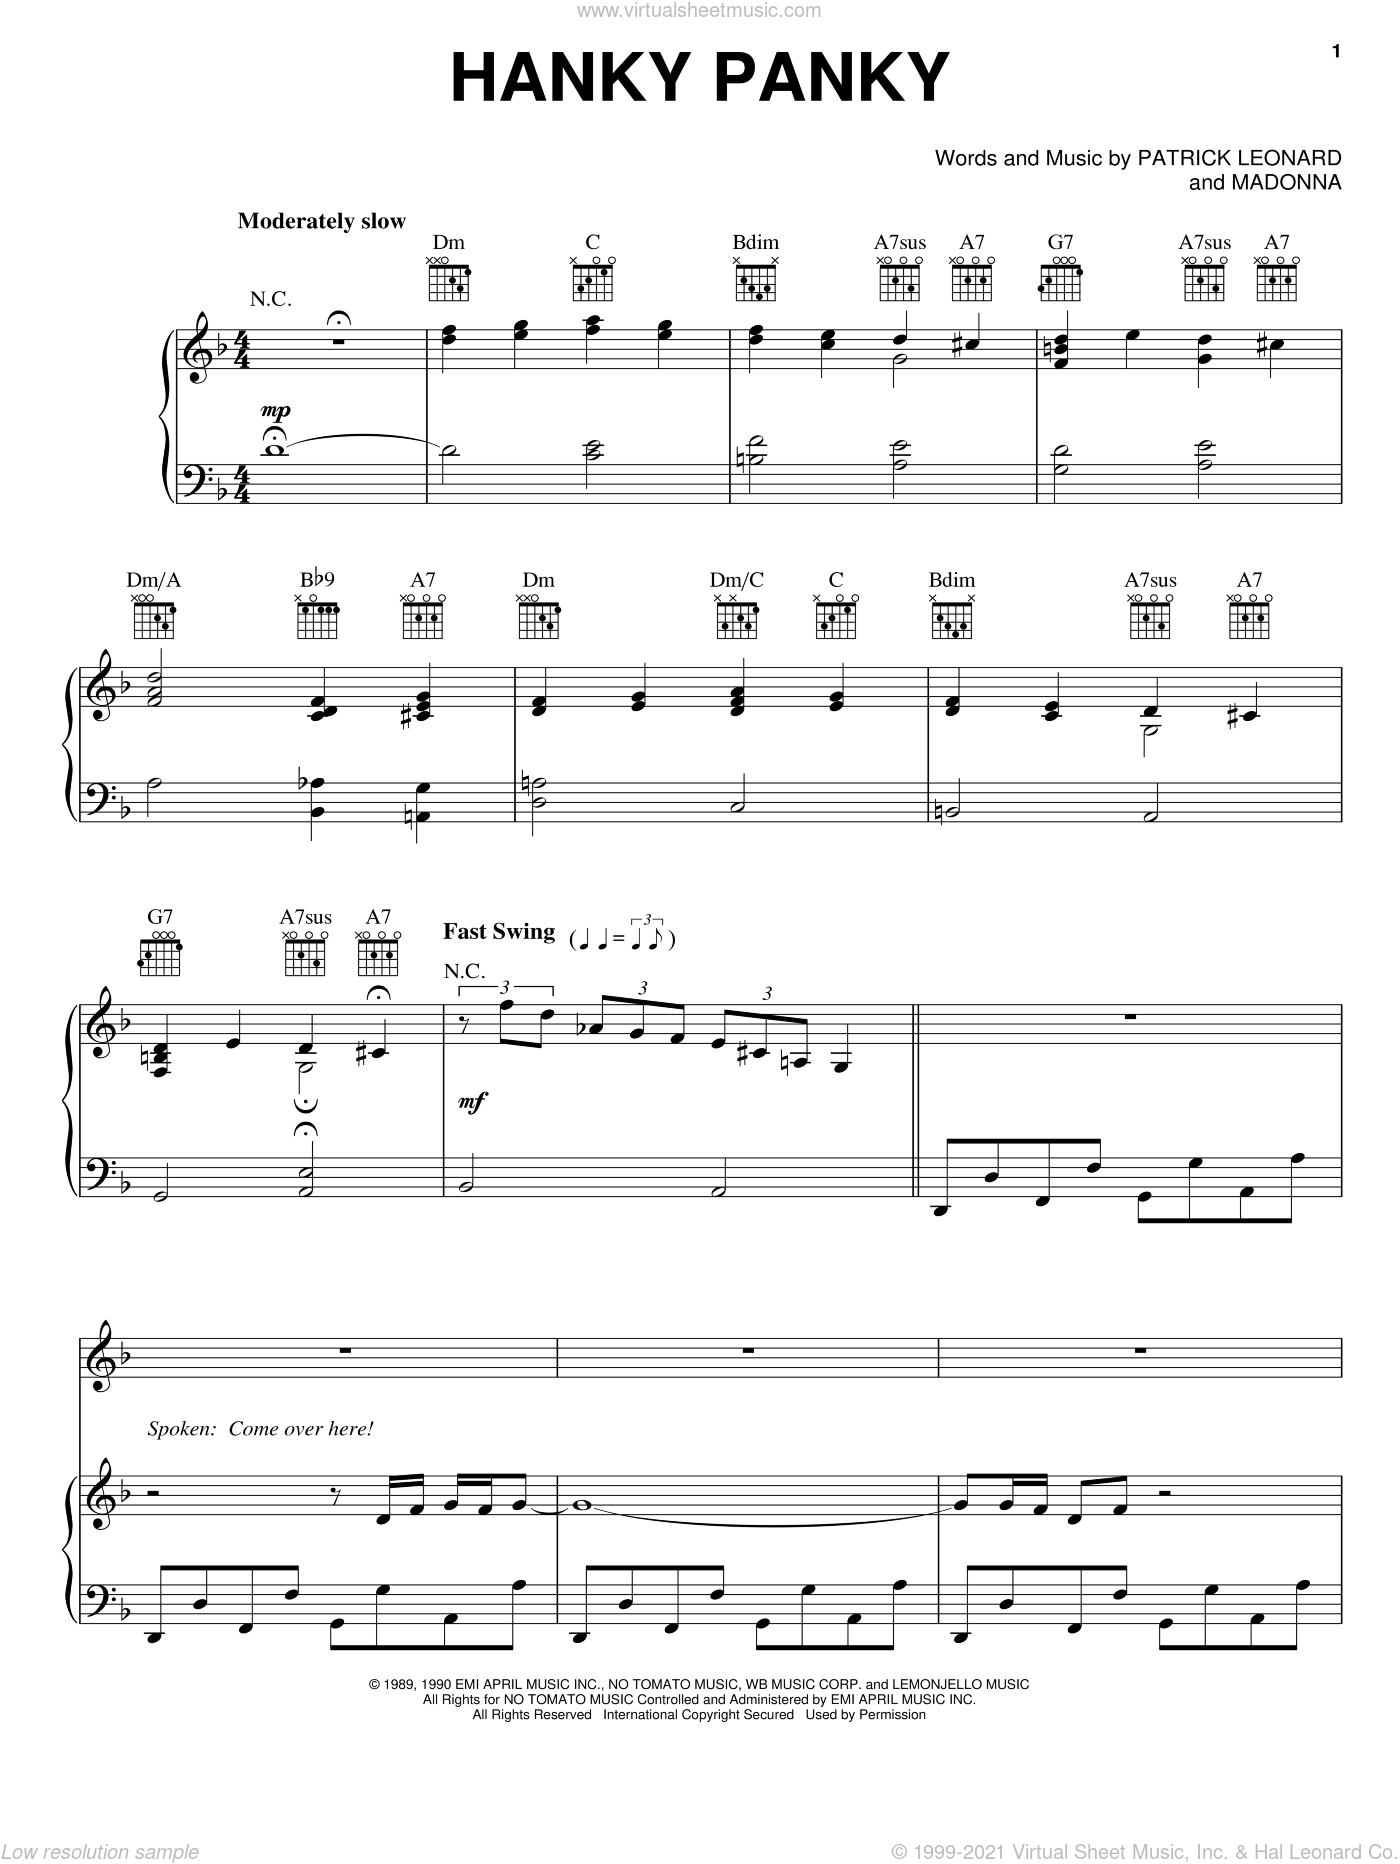 Hanky Panky sheet music for voice, piano or guitar by Patrick Leonard